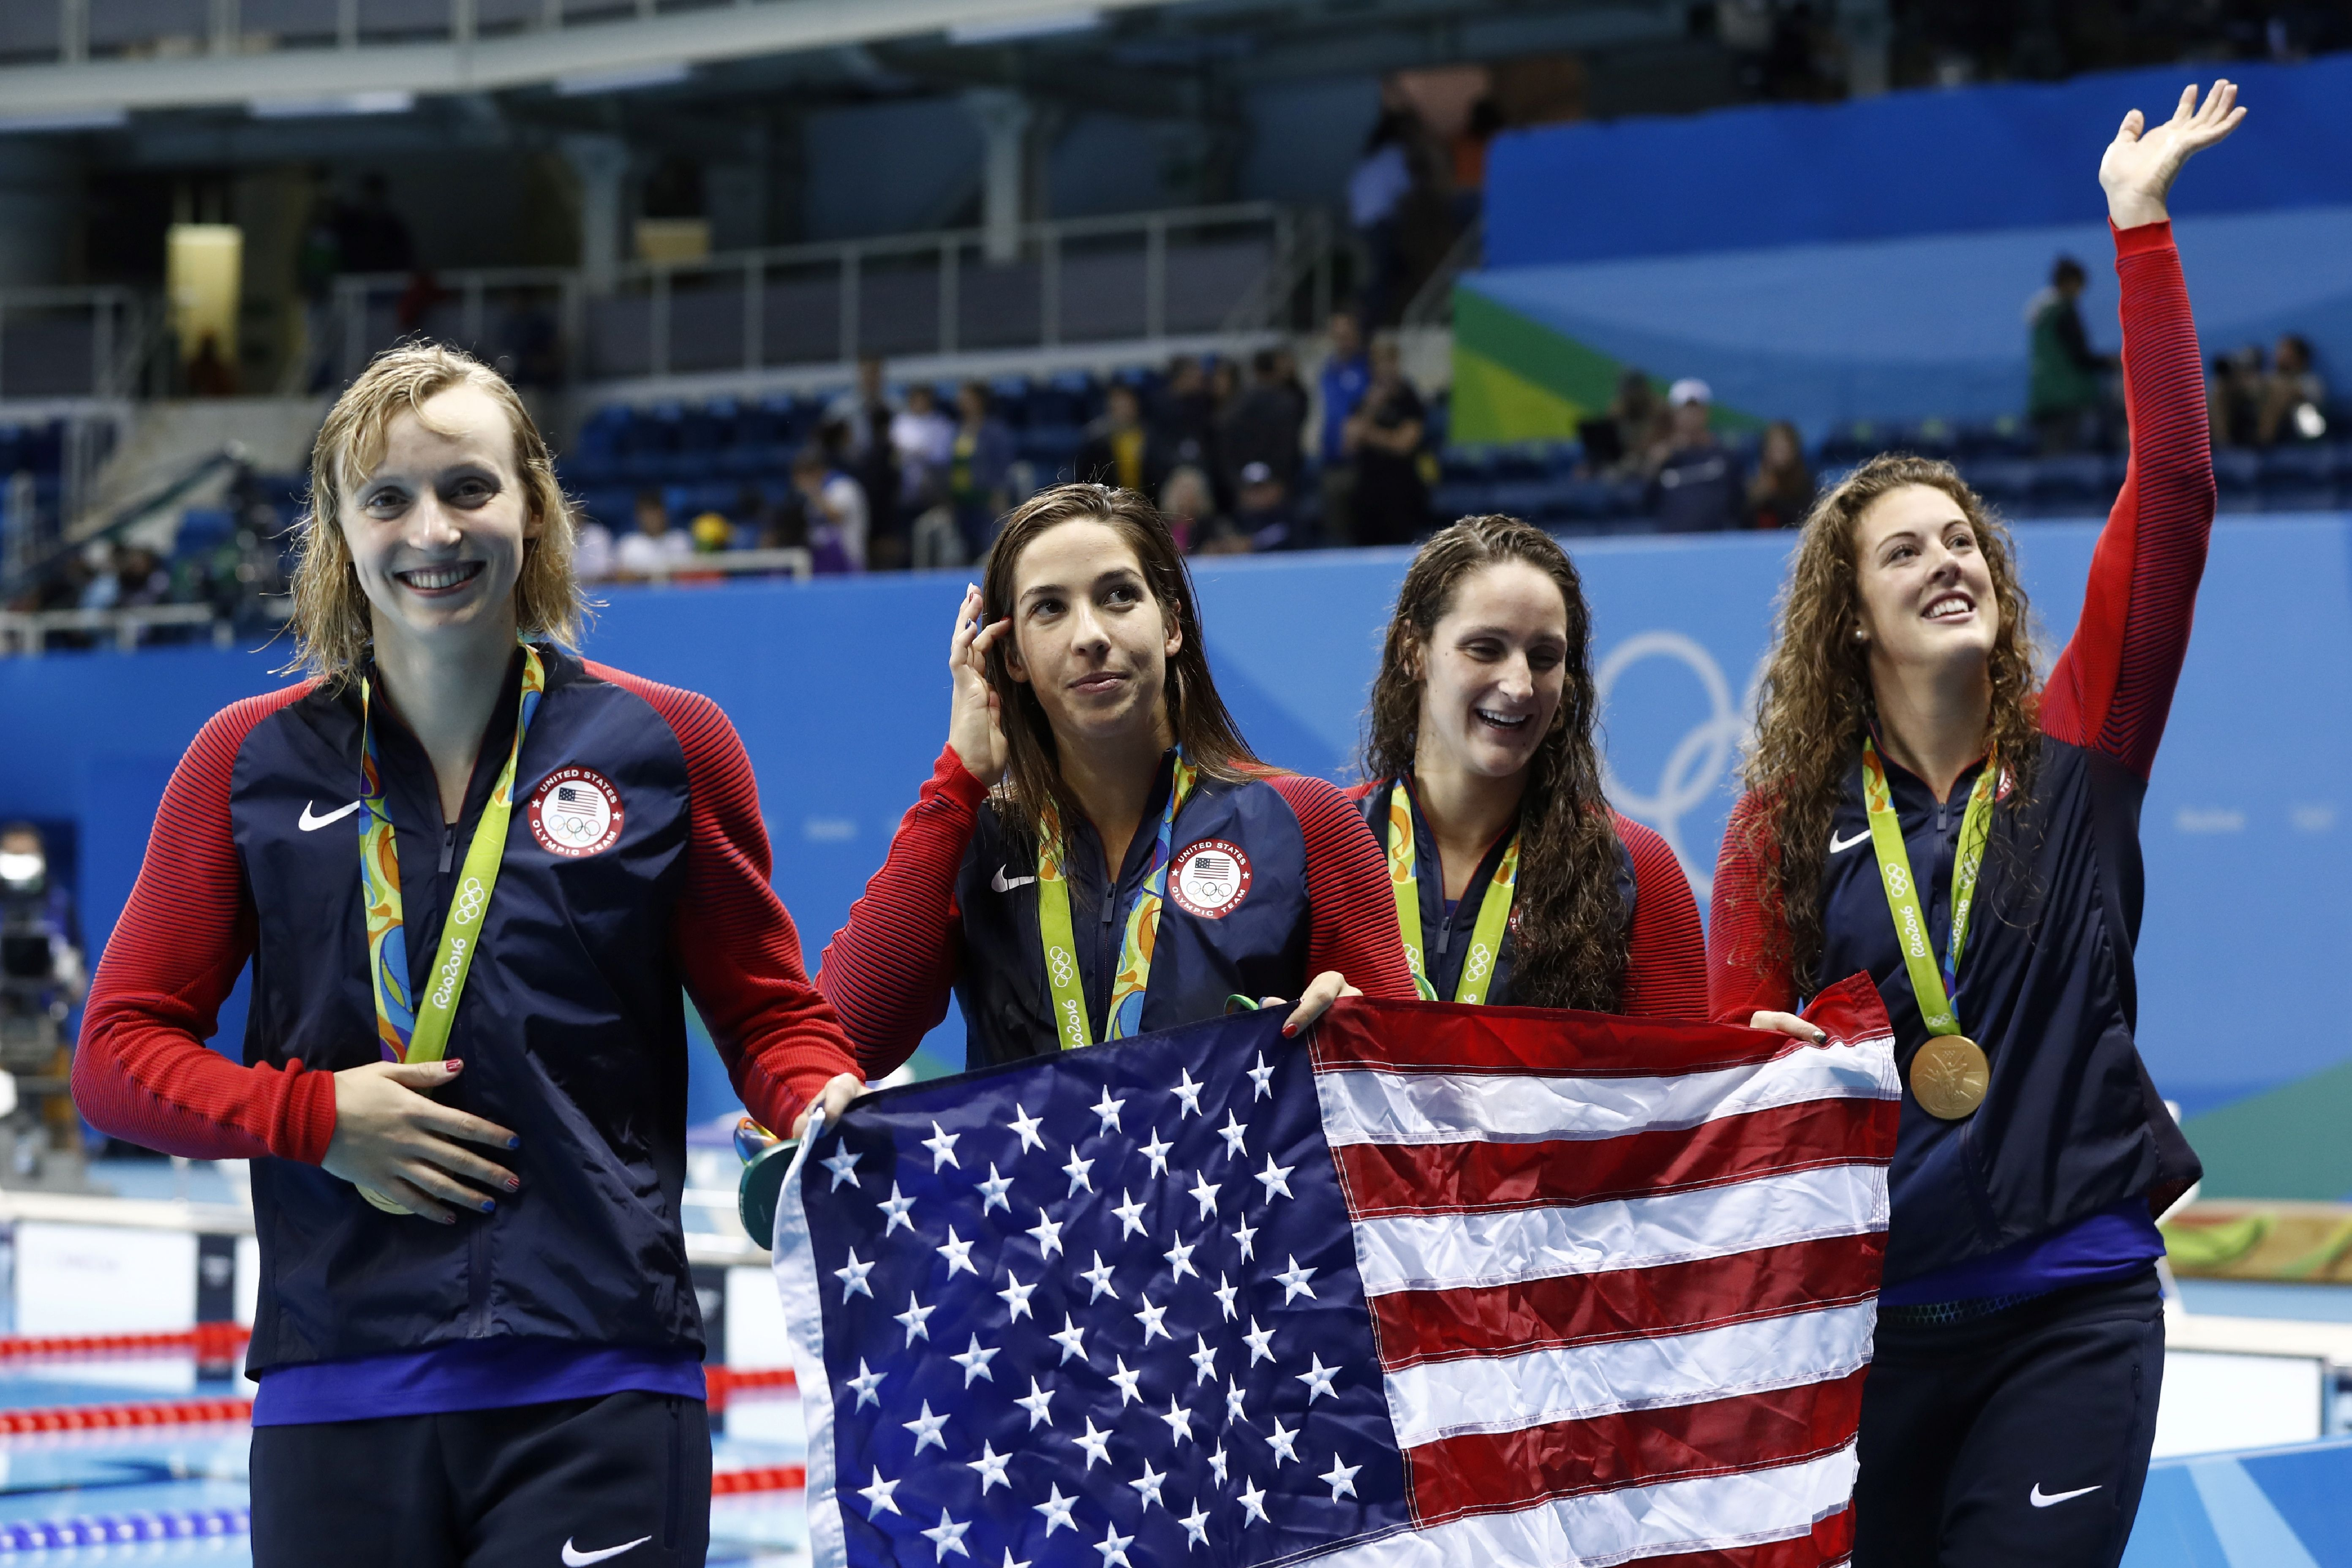 Why Michael Phelps Was Laughing During the National Anthem